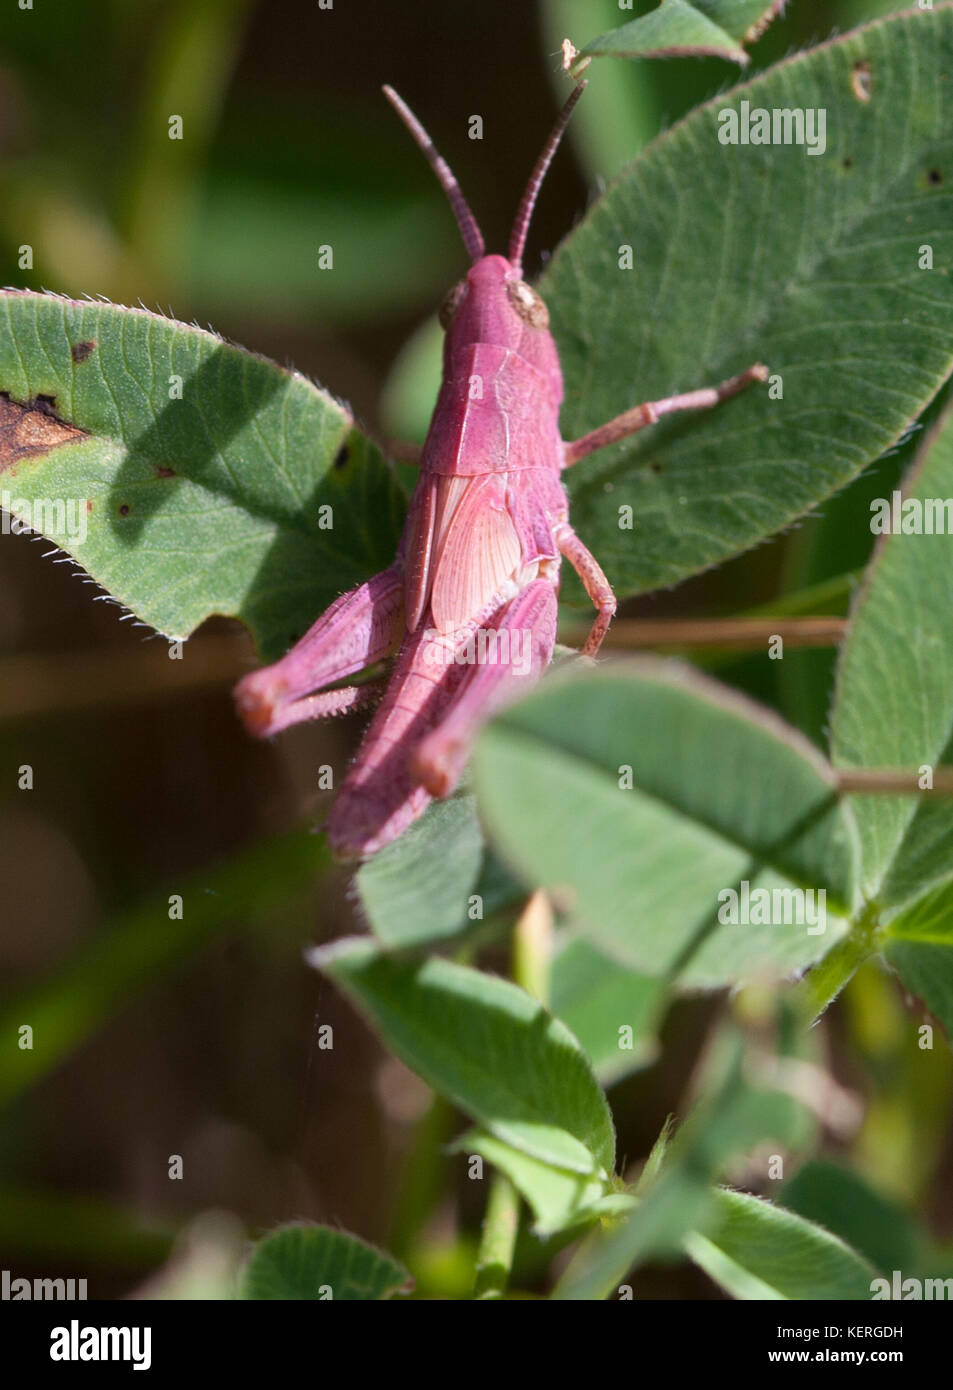 GRASSHOPPER NYMPH at leaf 2017 Stock Photo